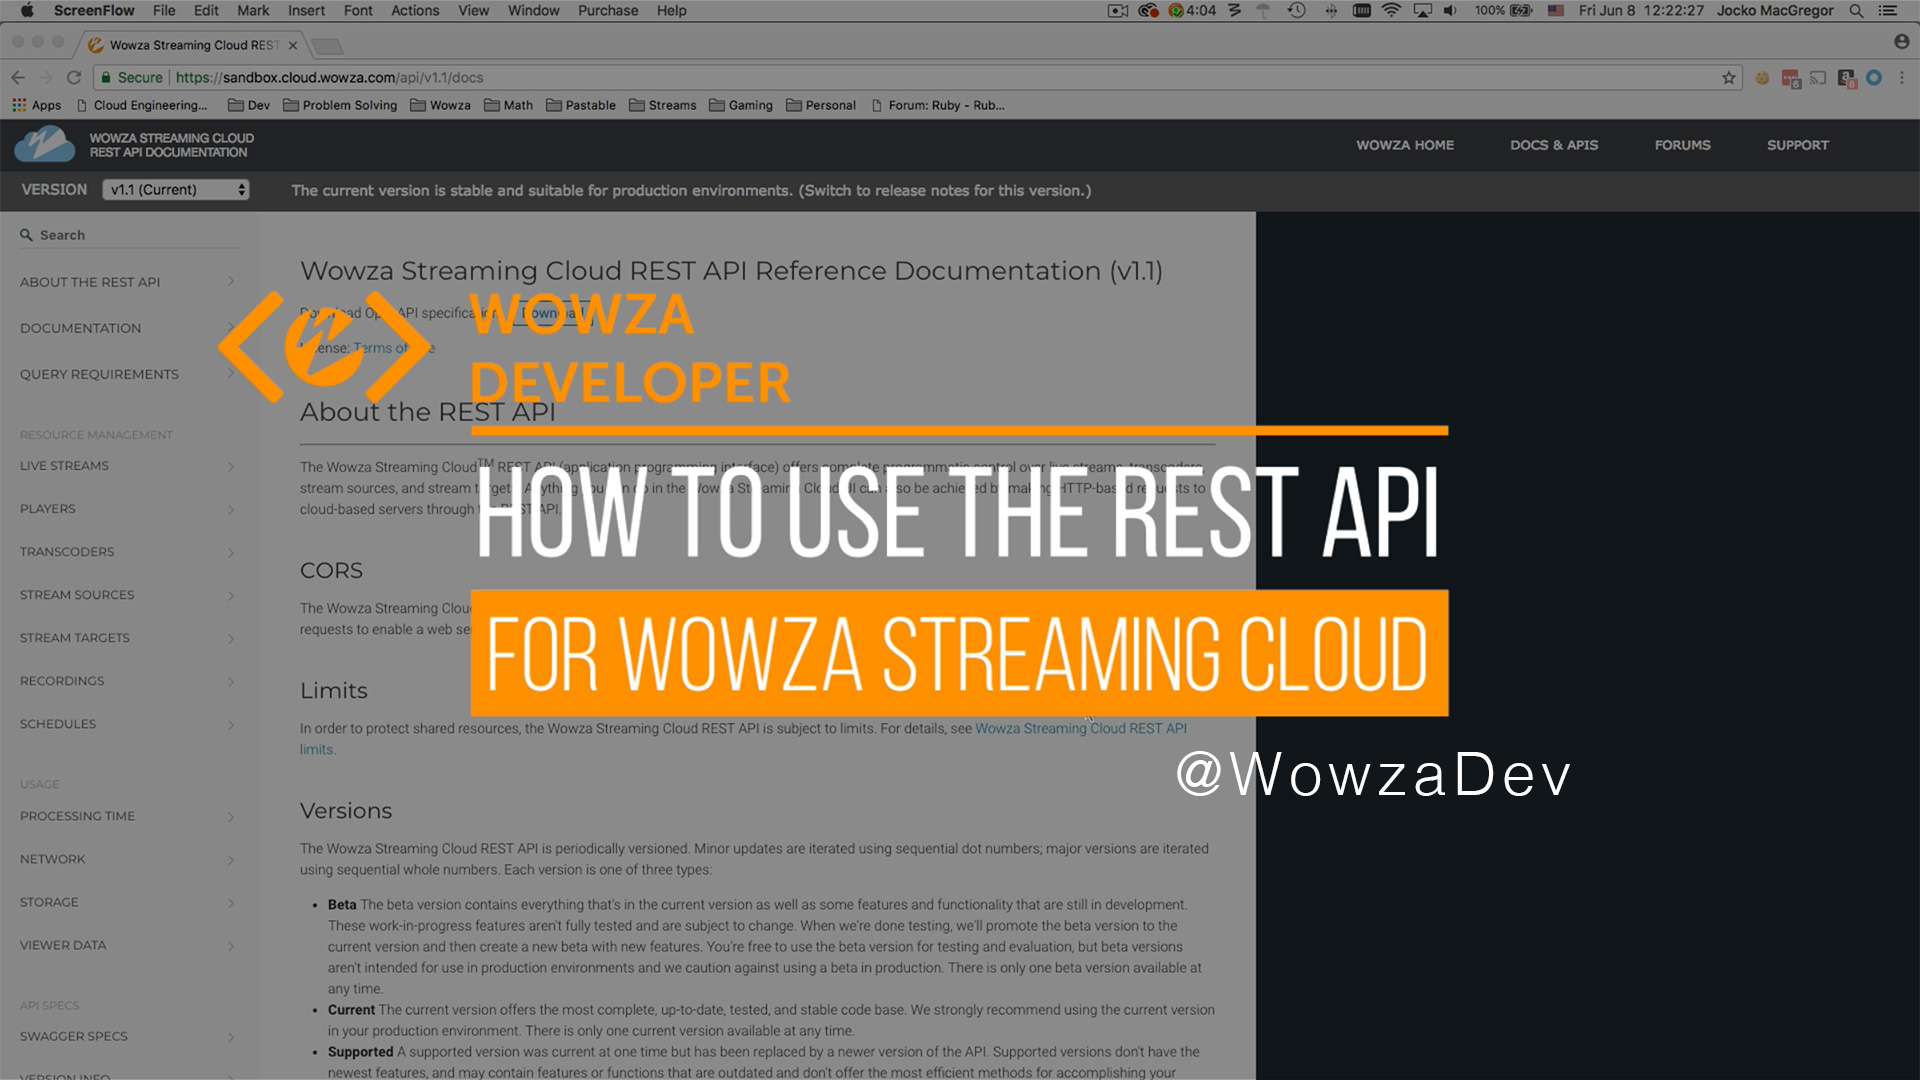 REST API: What It Is and How to Use One for Streaming | Wowza